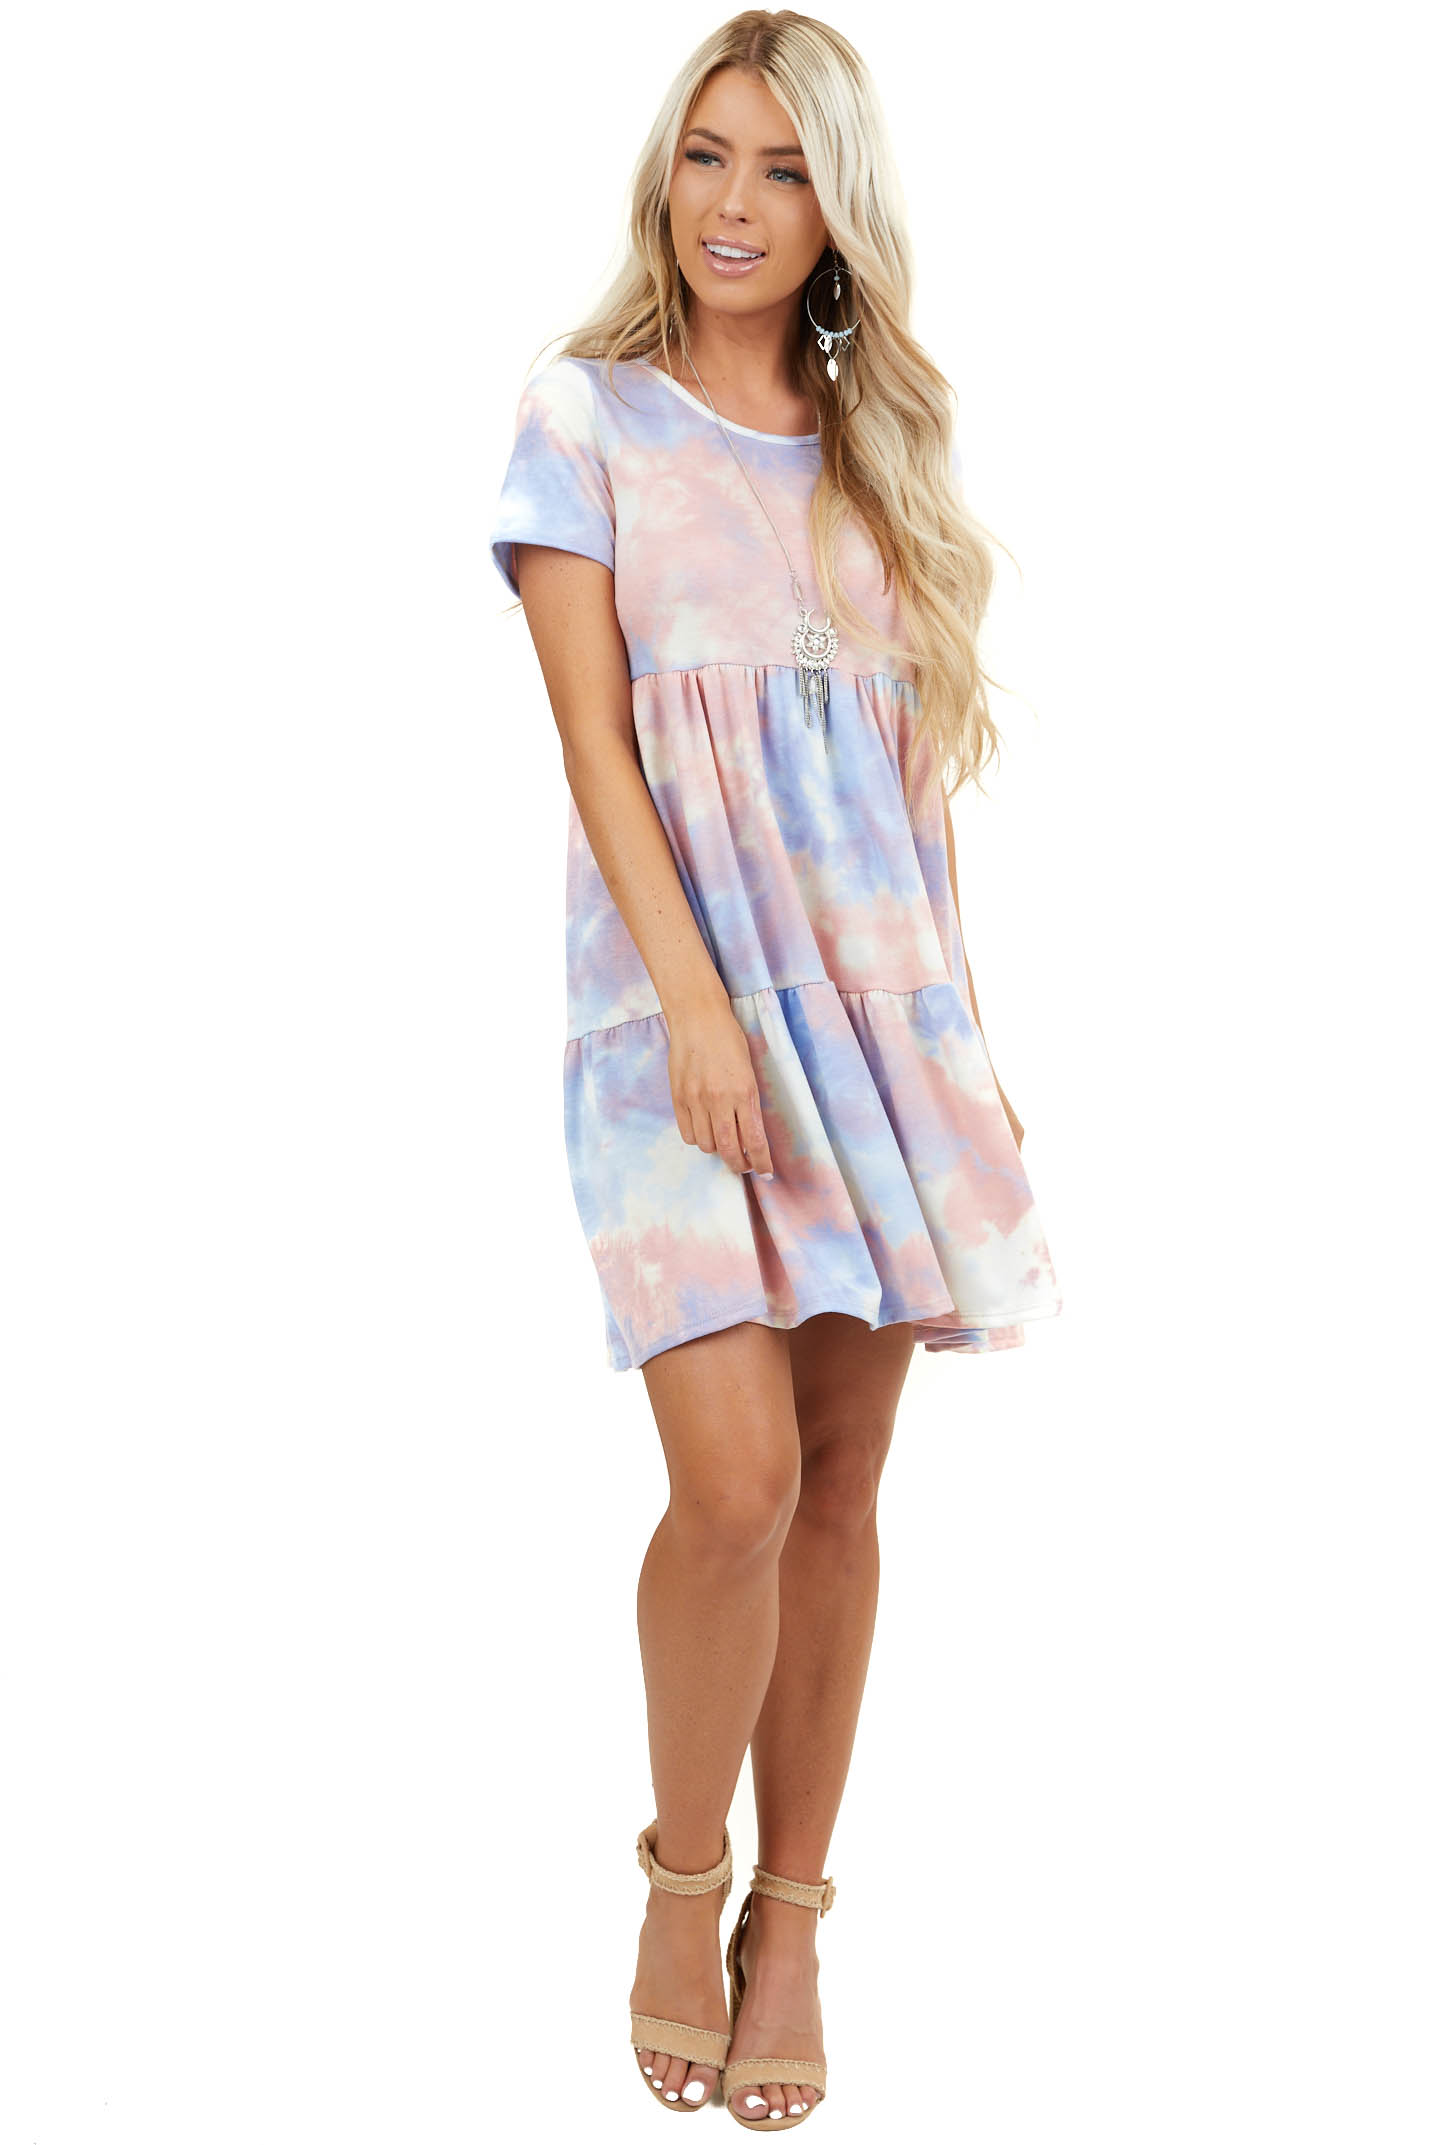 Powder Blue and Dusty Blush Tie Dye Dress with Short Sleeves